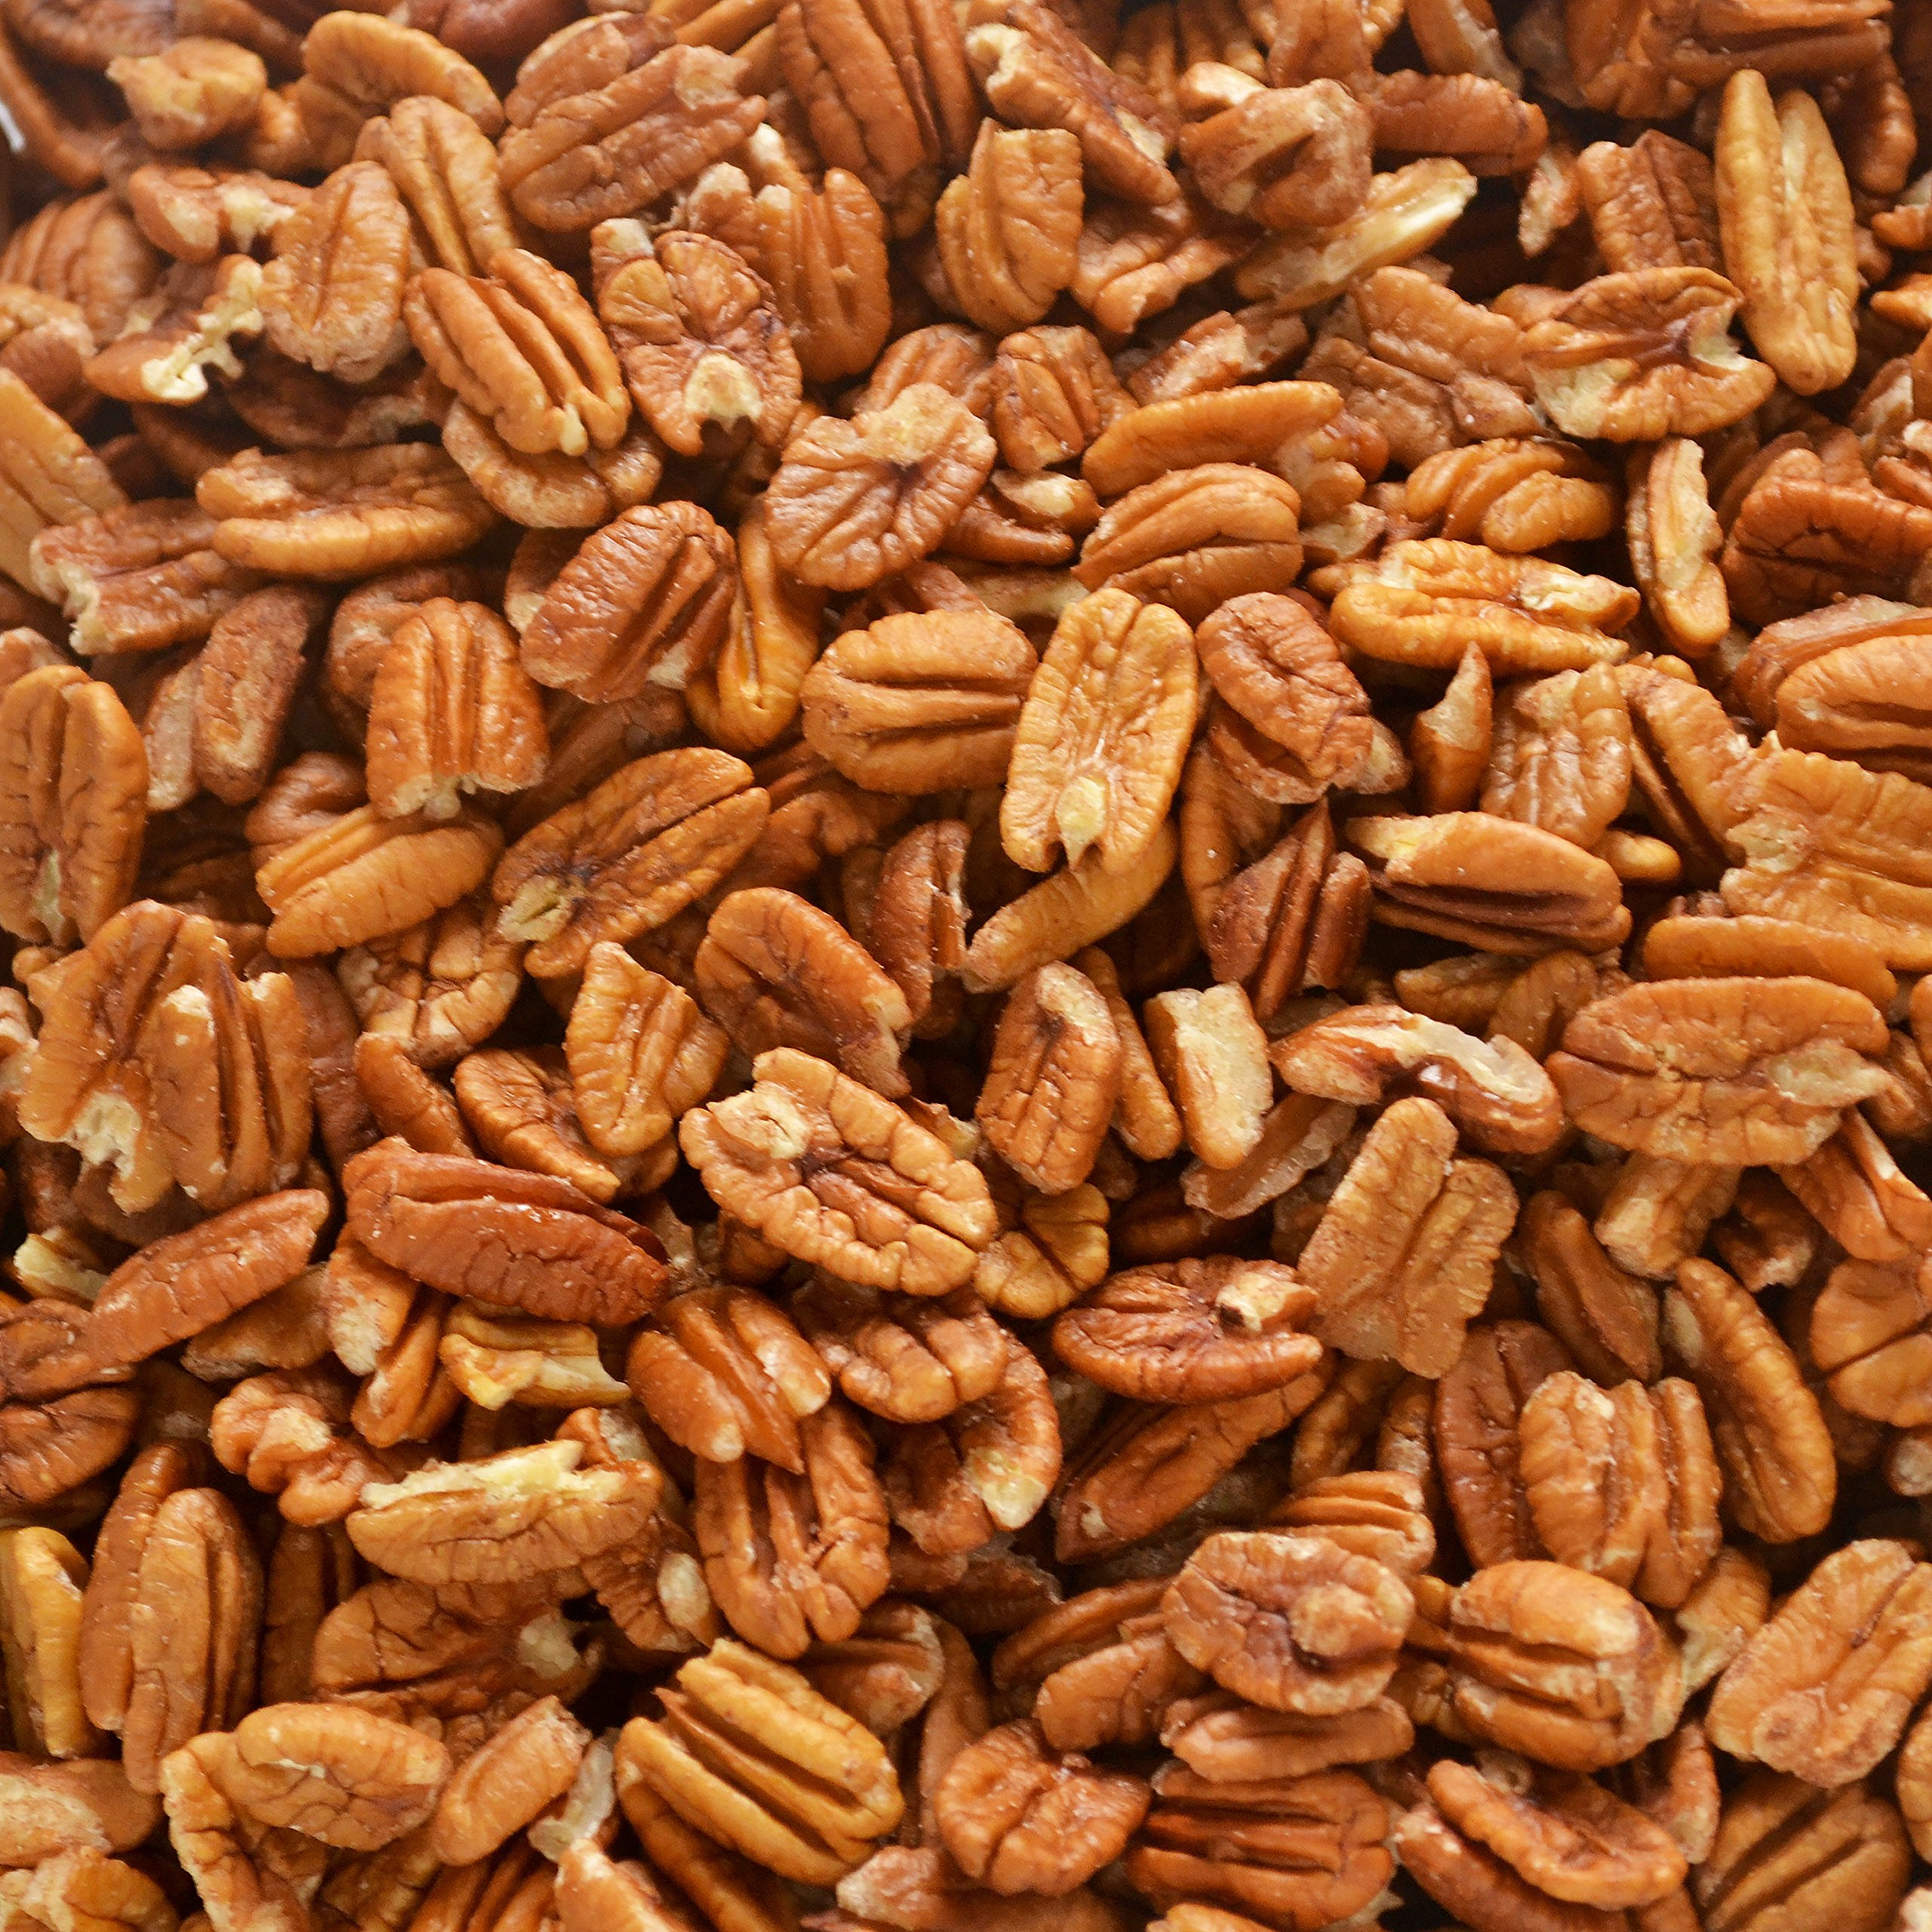 Fresh Shelled Texas Native Pecan Halves - Certified Pesticide-free and Wild-harvested, Bulk 30 Lb. by PecanShop.com